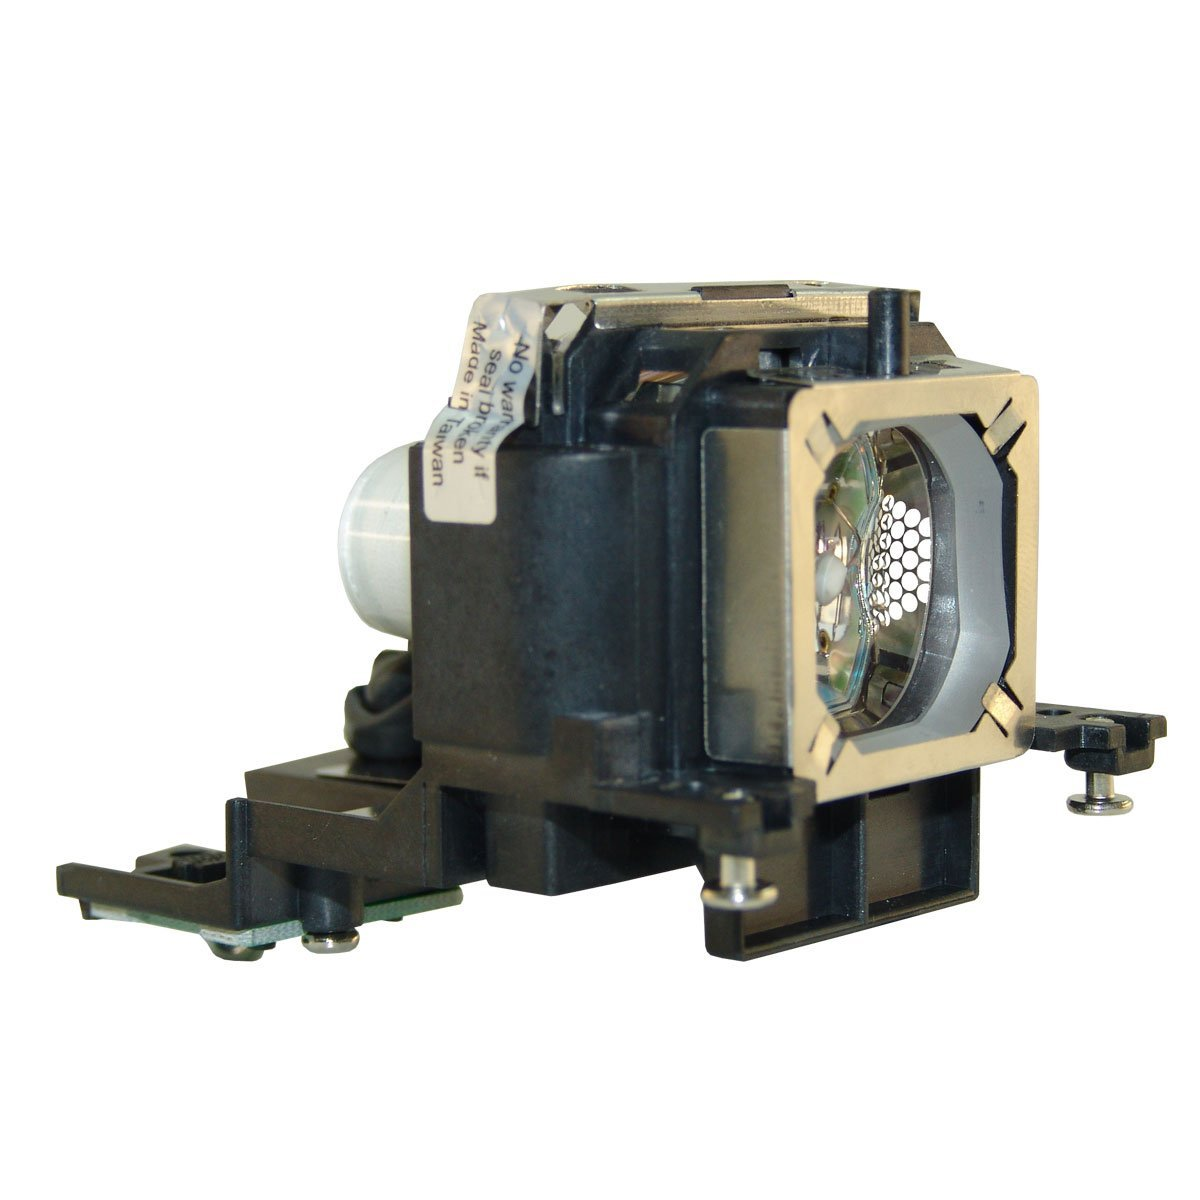 POA-LMP131 LMP131 for SANYO PLC-WXU300 PLC-XU300 PLC-XU301 PLC-XU305 PLC-XU350 PLC-XU355 Projector Bulb Lamp With Housing plc xm150 plc xm150l plc wm5500 plc zm5000l poa lmp136 for sanyo compatible projector lamp bulbs with housing